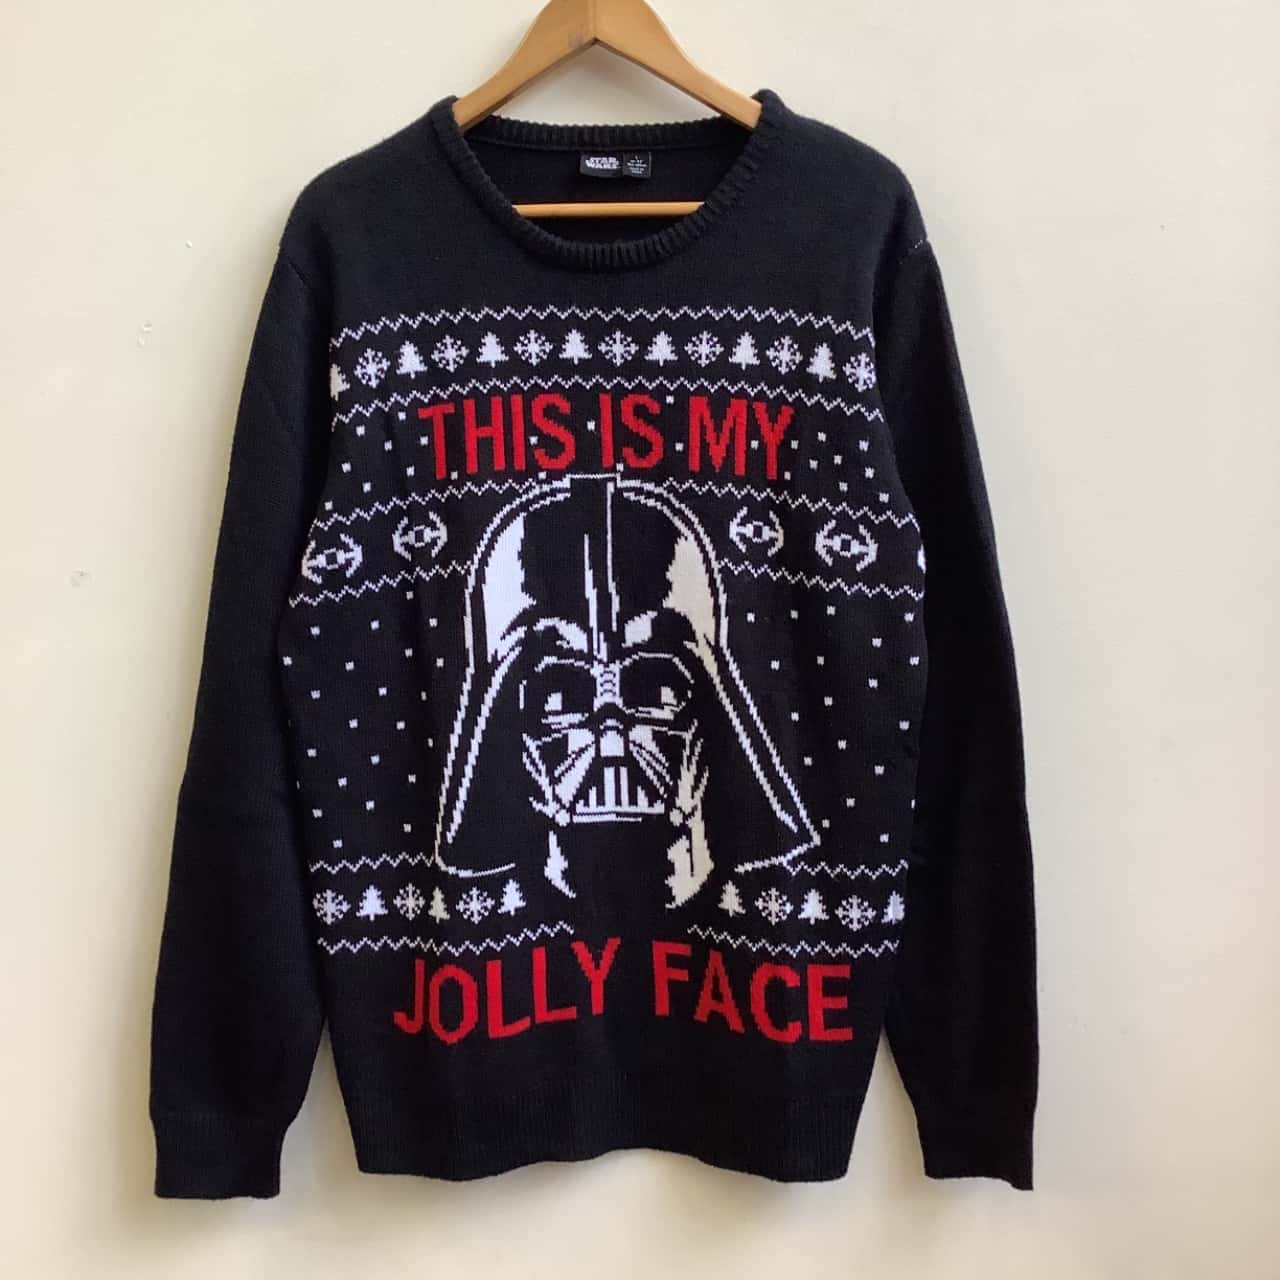 Star Wars / Primark Mens Size L  Black /Red/White Darth Vader This is My Jolly Face Jumper